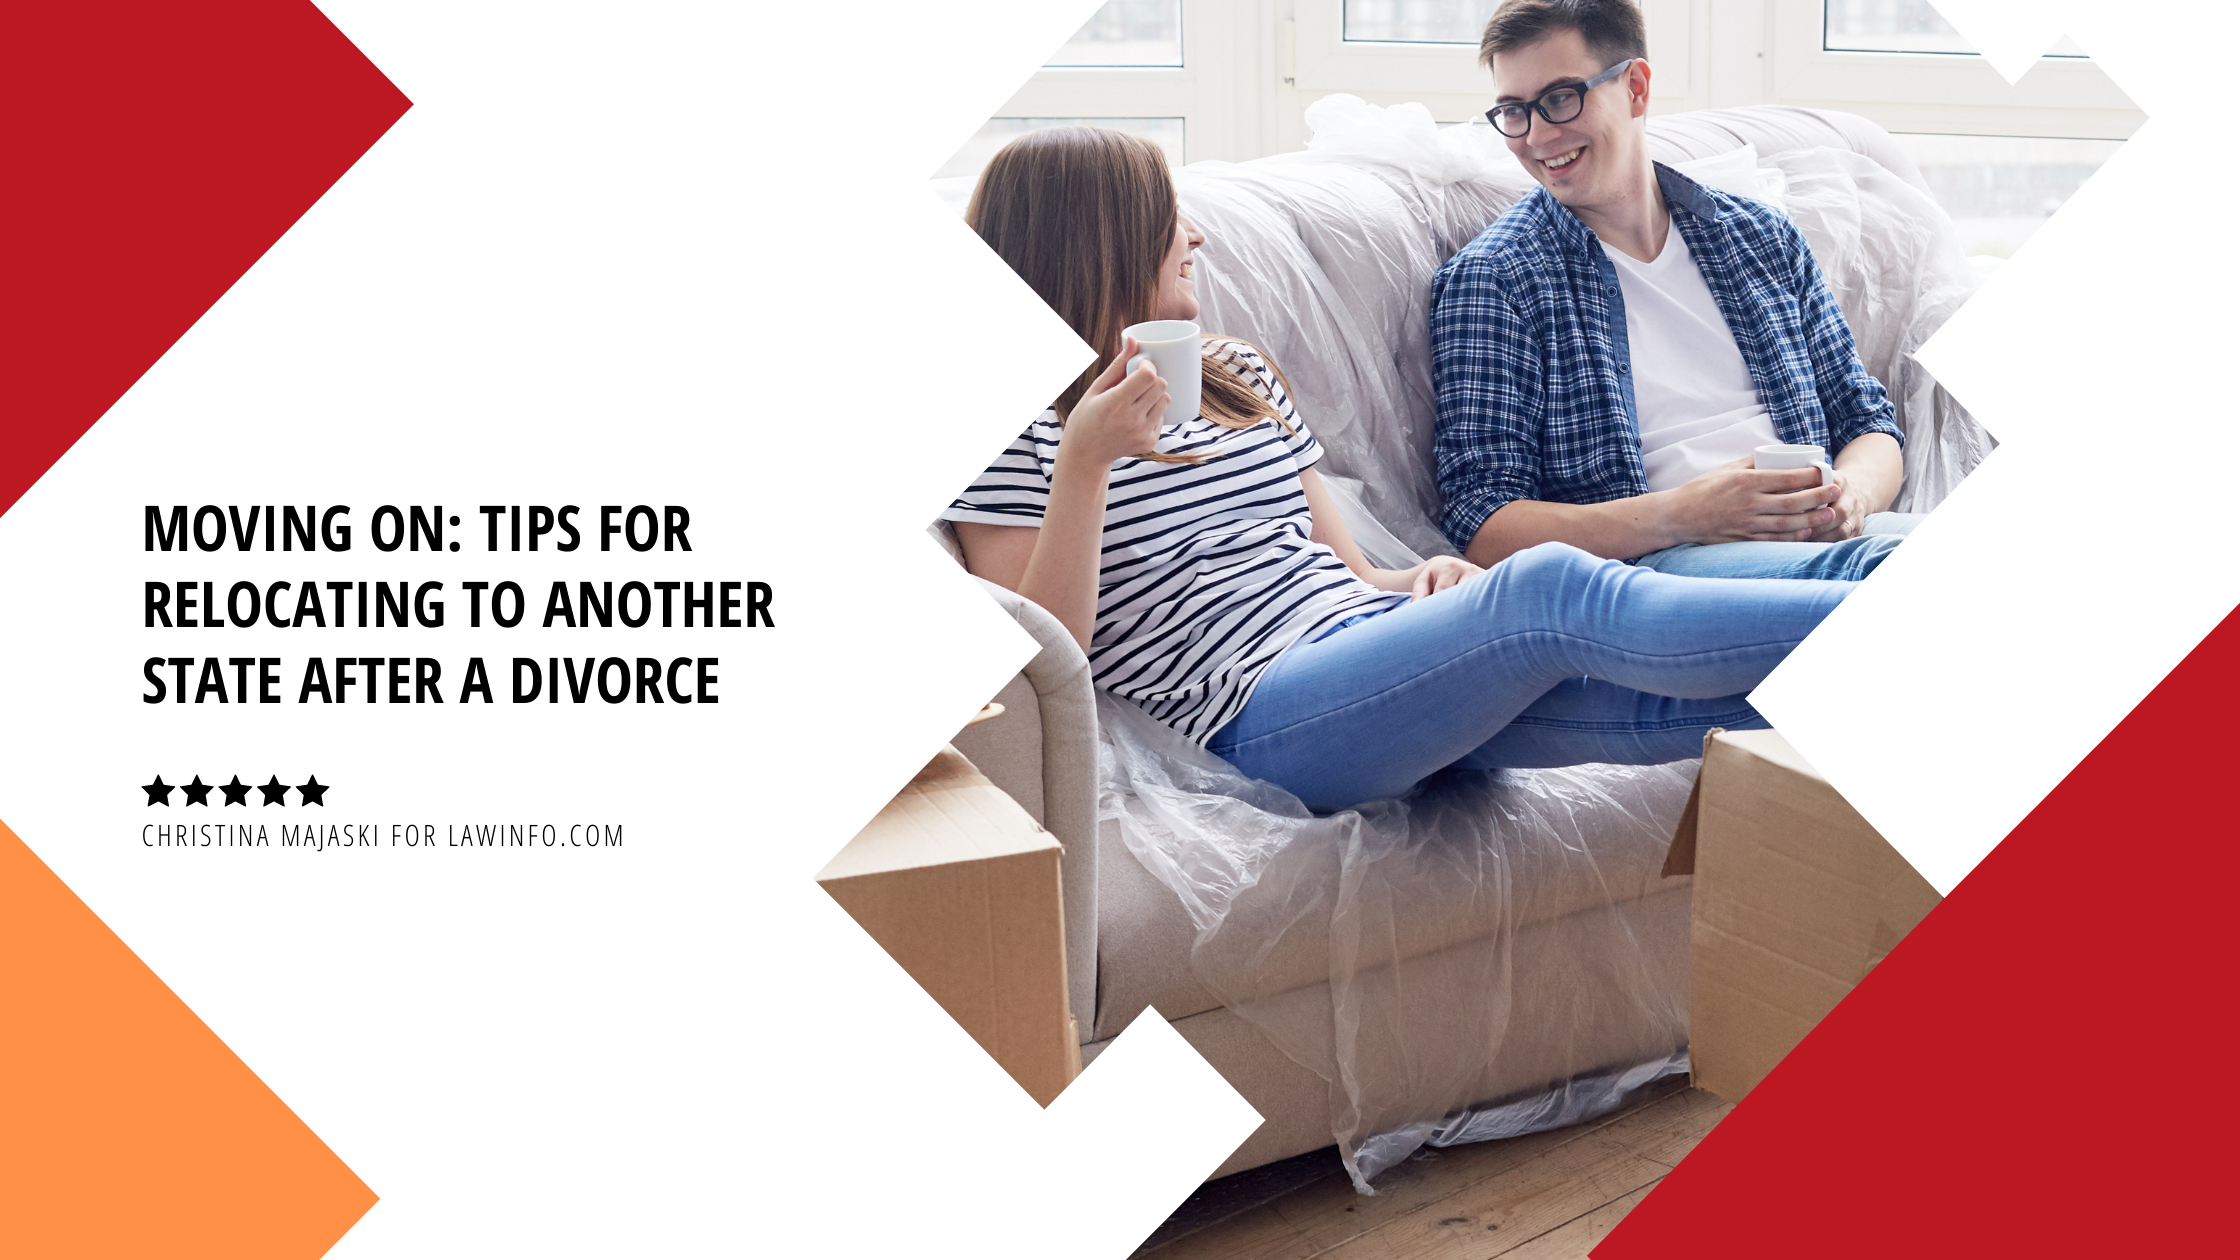 Moving On: Tips for Relocating to Another State After a Divorce